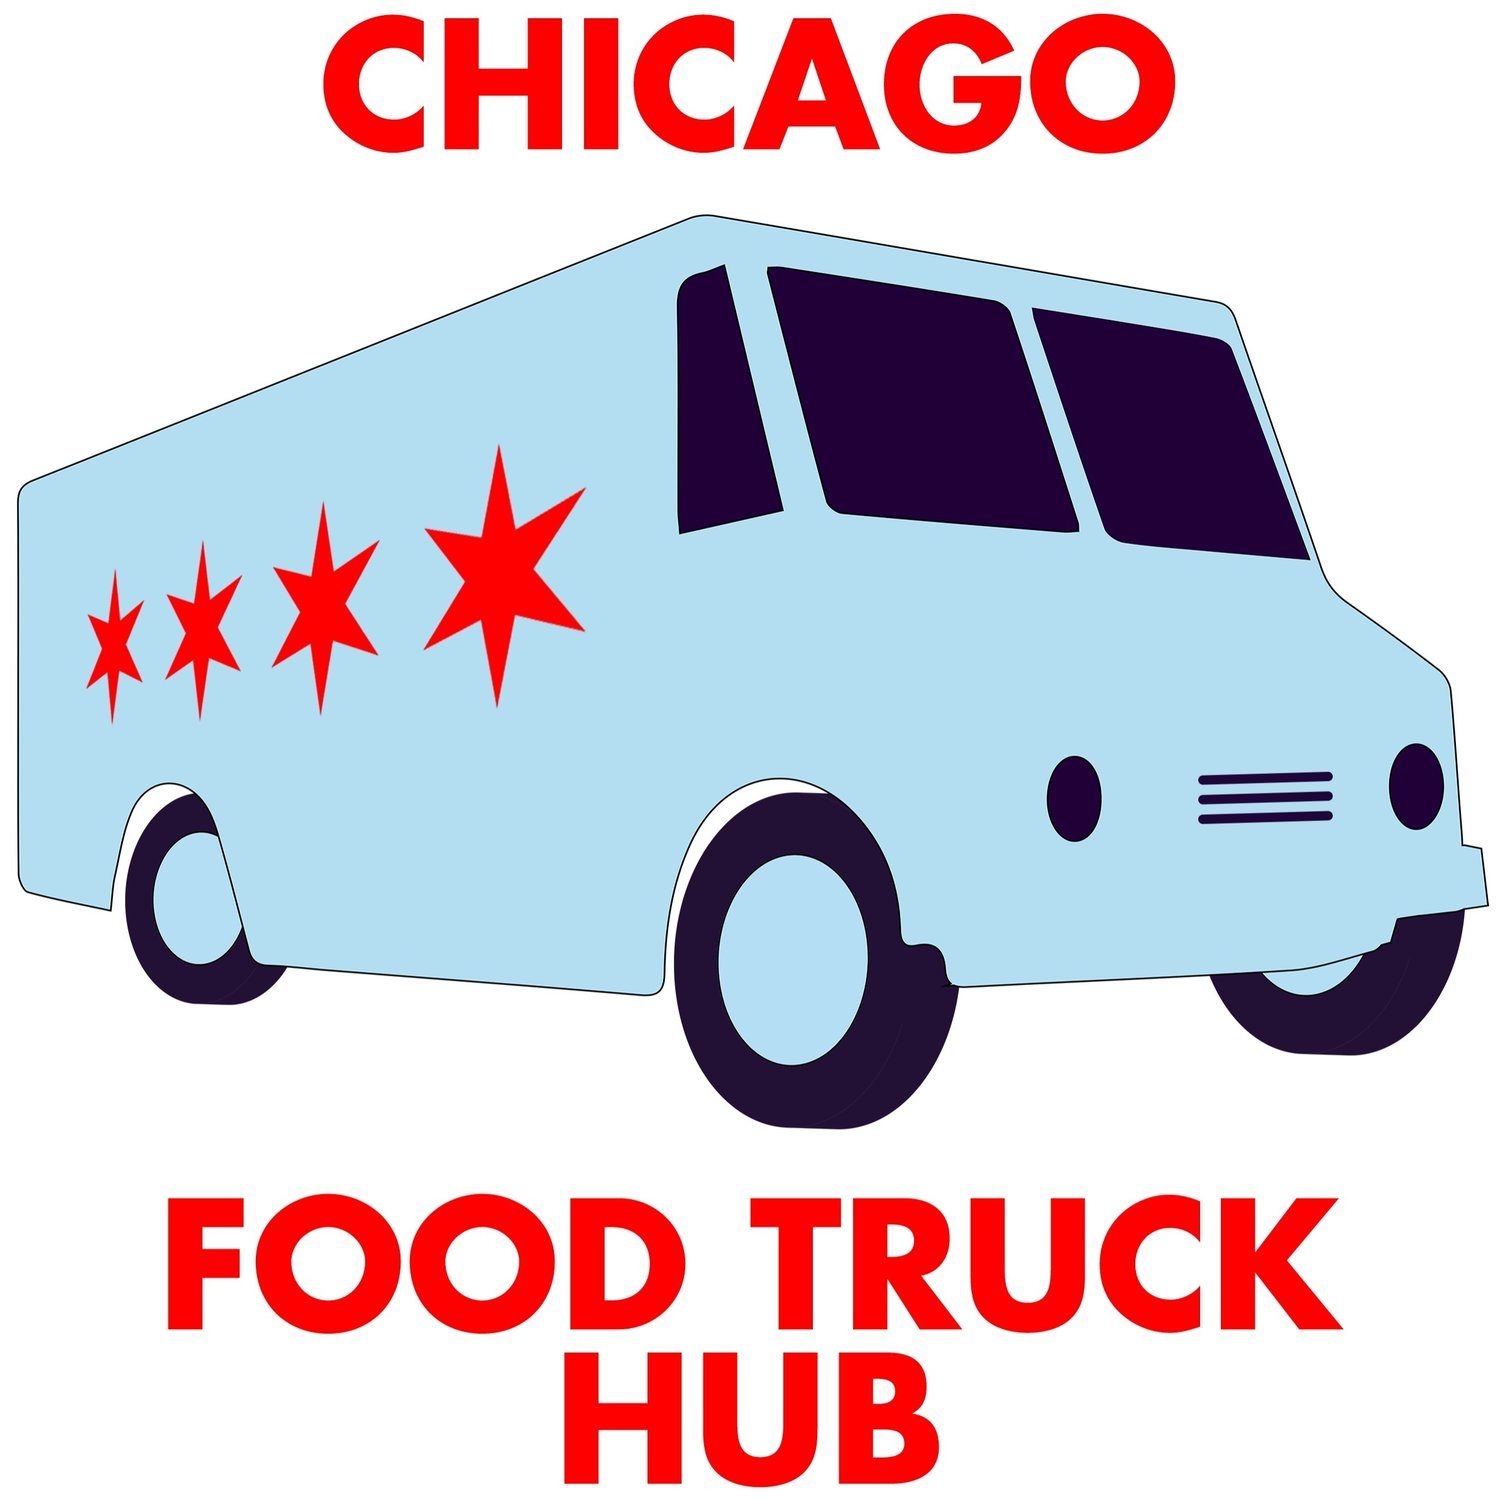 Chicago Food Truck Hub